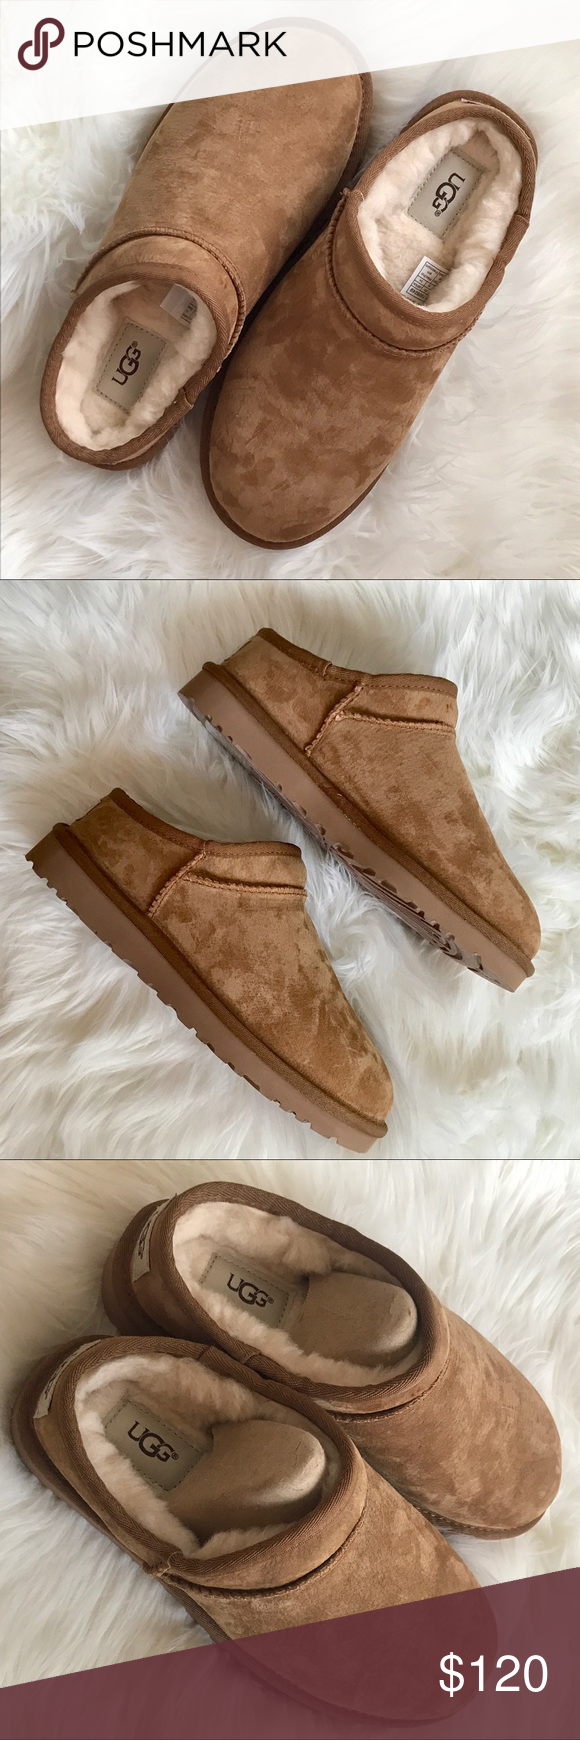 0176e888f48 BRAND NEW Ugg Classic Chestnut Slipper Brand new, authentic, with ...